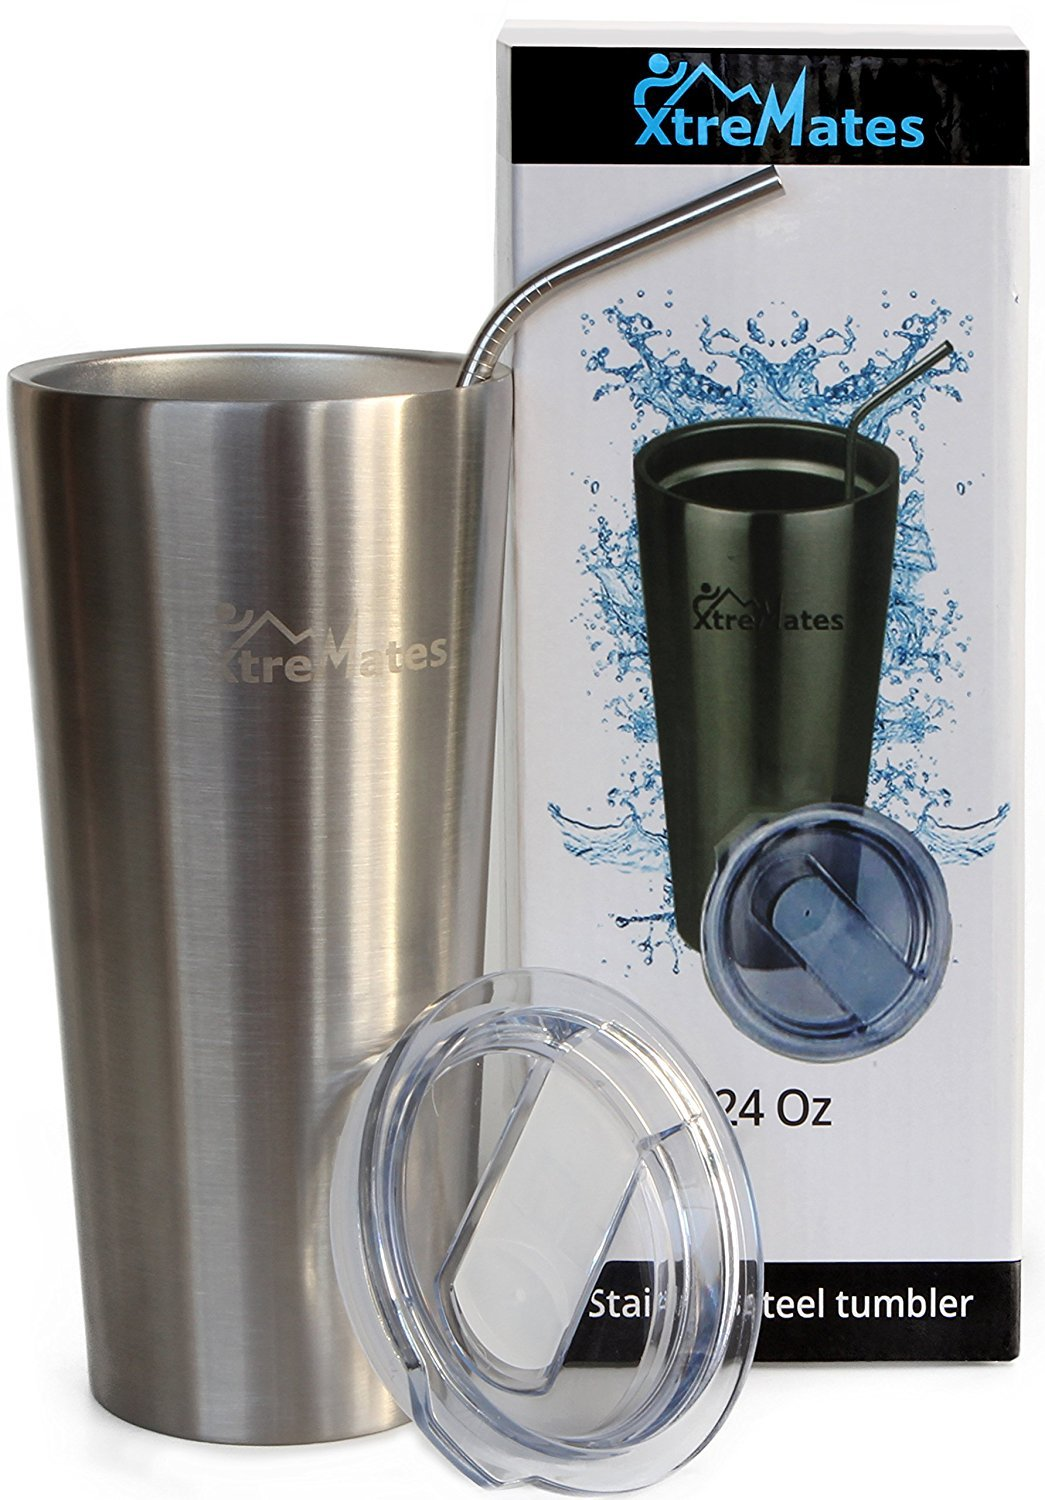 265c7f44862 Xtremates Stainless Steel 24Oz Tumbler--Hot & Cold Double Wall Insulated  Premium Newest Straight Outer Shape - X-durable Tritan Spill/Splash Proof  slider ...